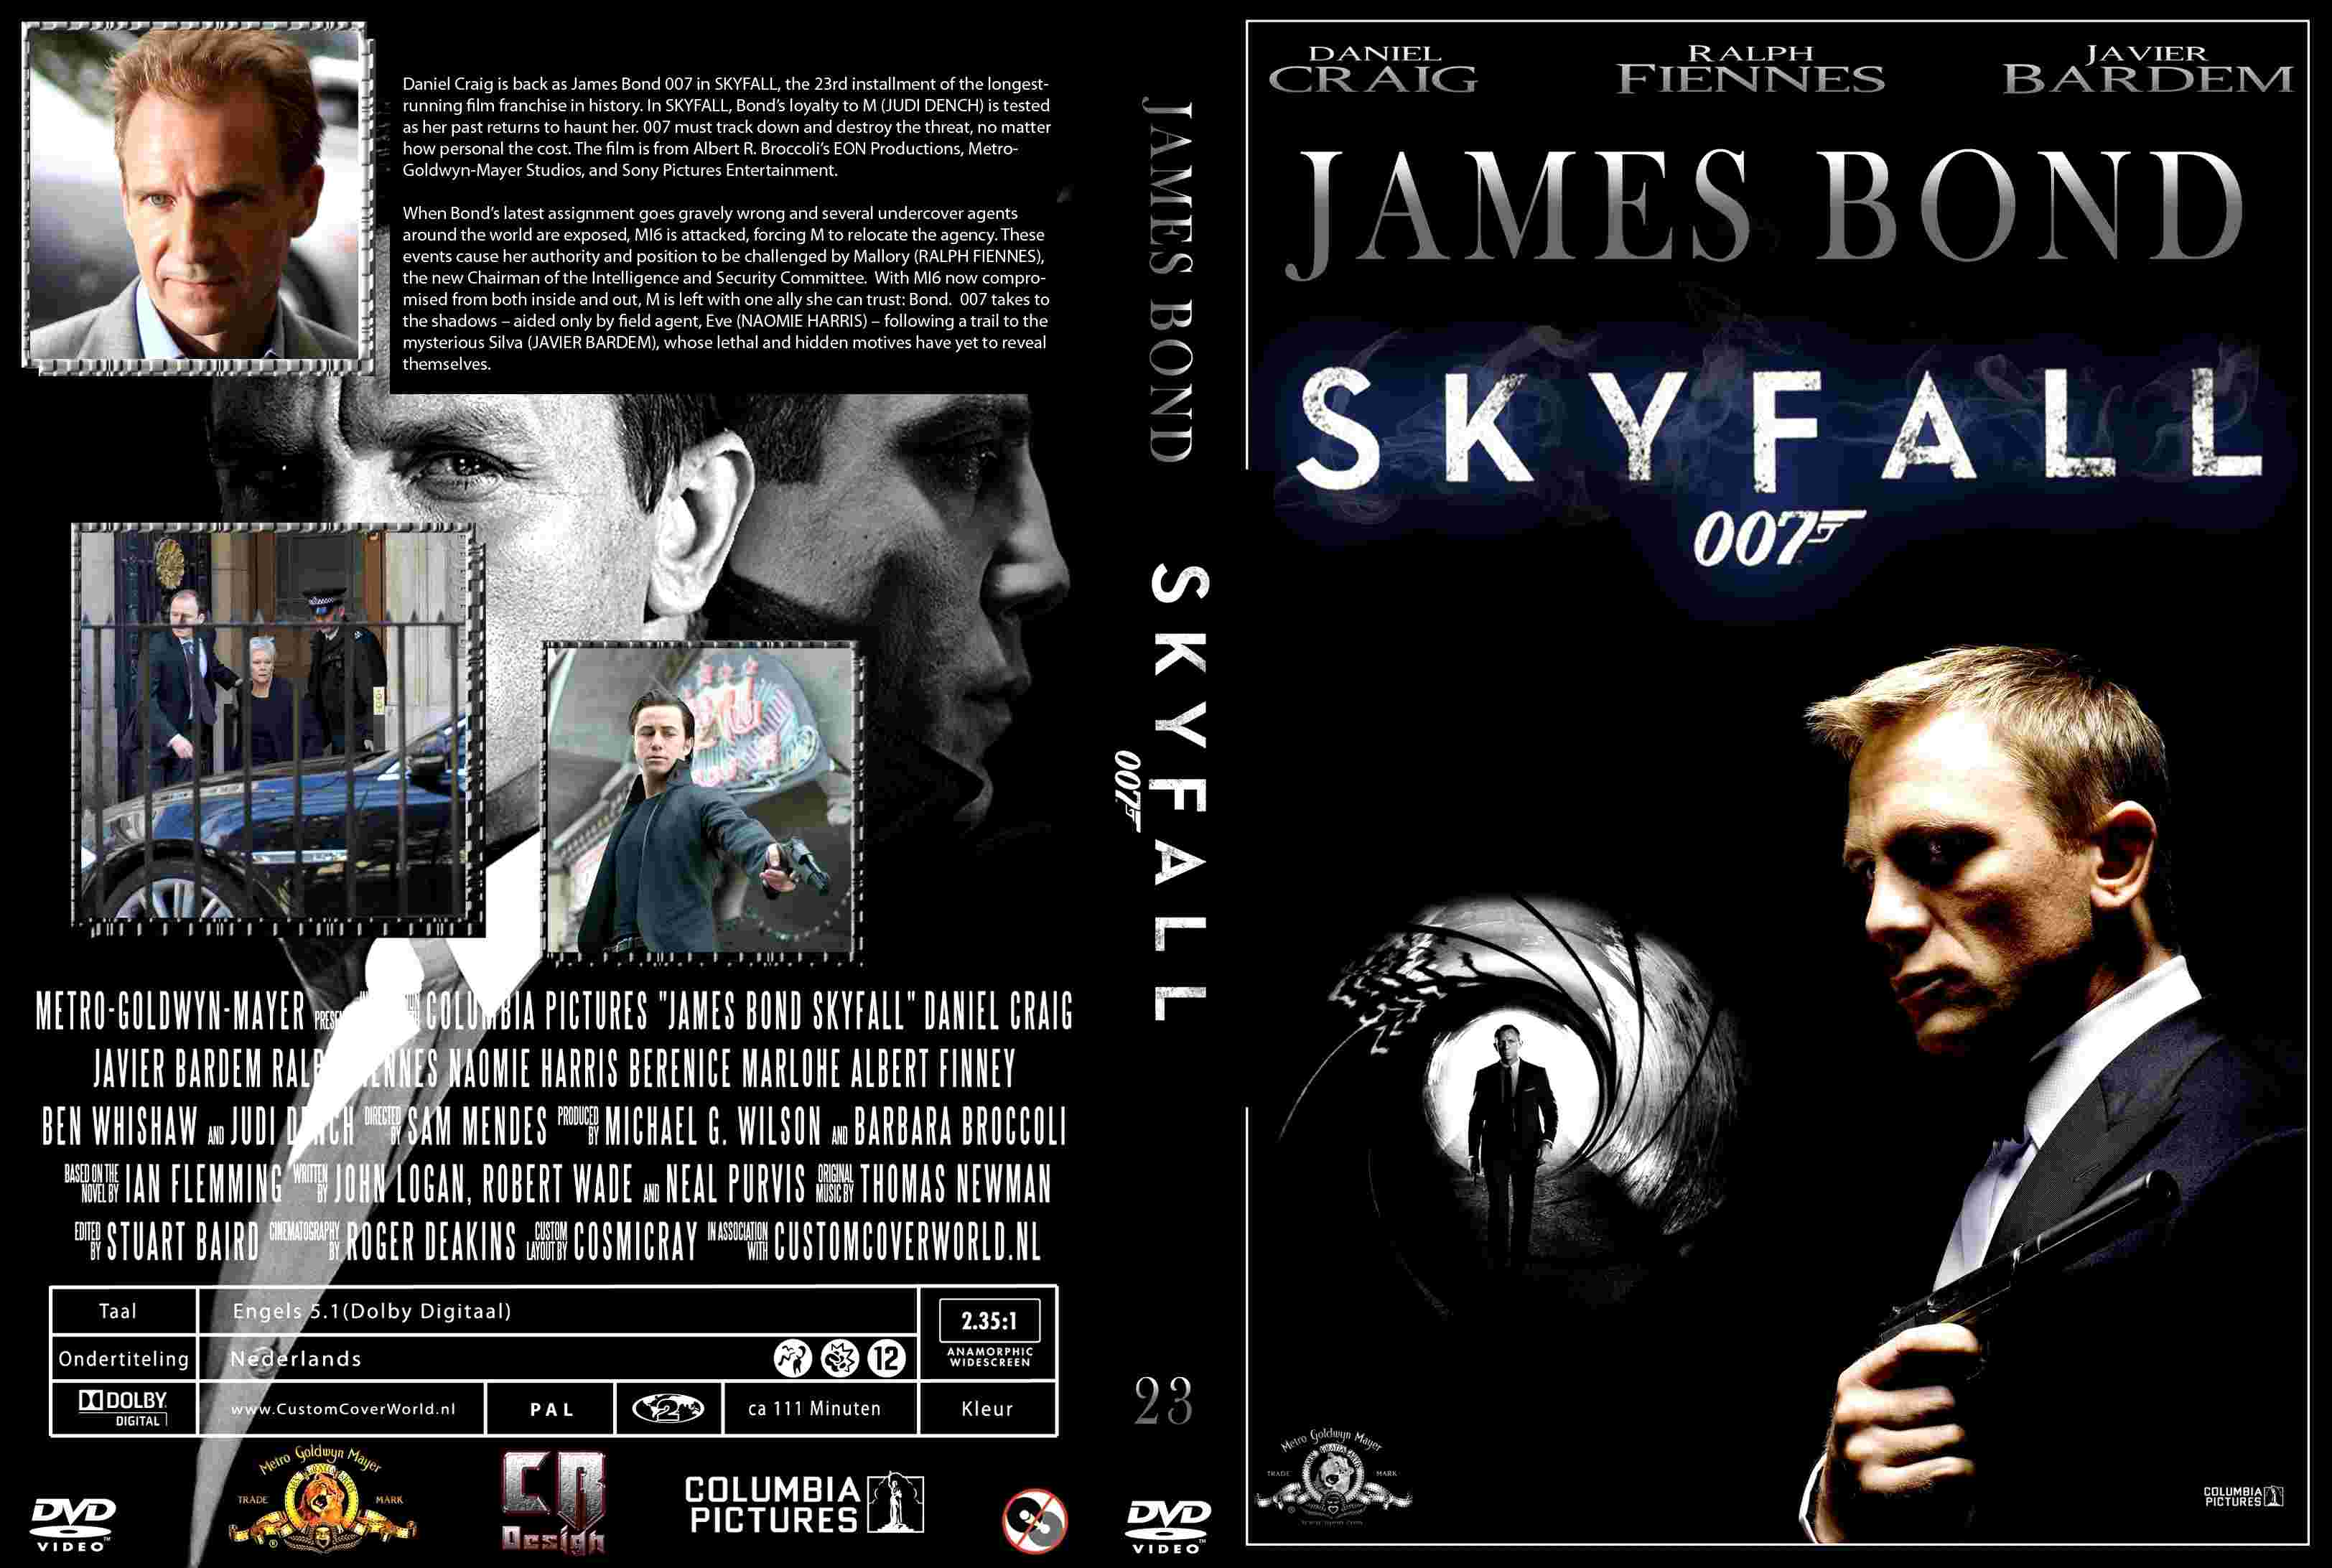 Skyfall  book 20...007 Skyfall Dvd Cover